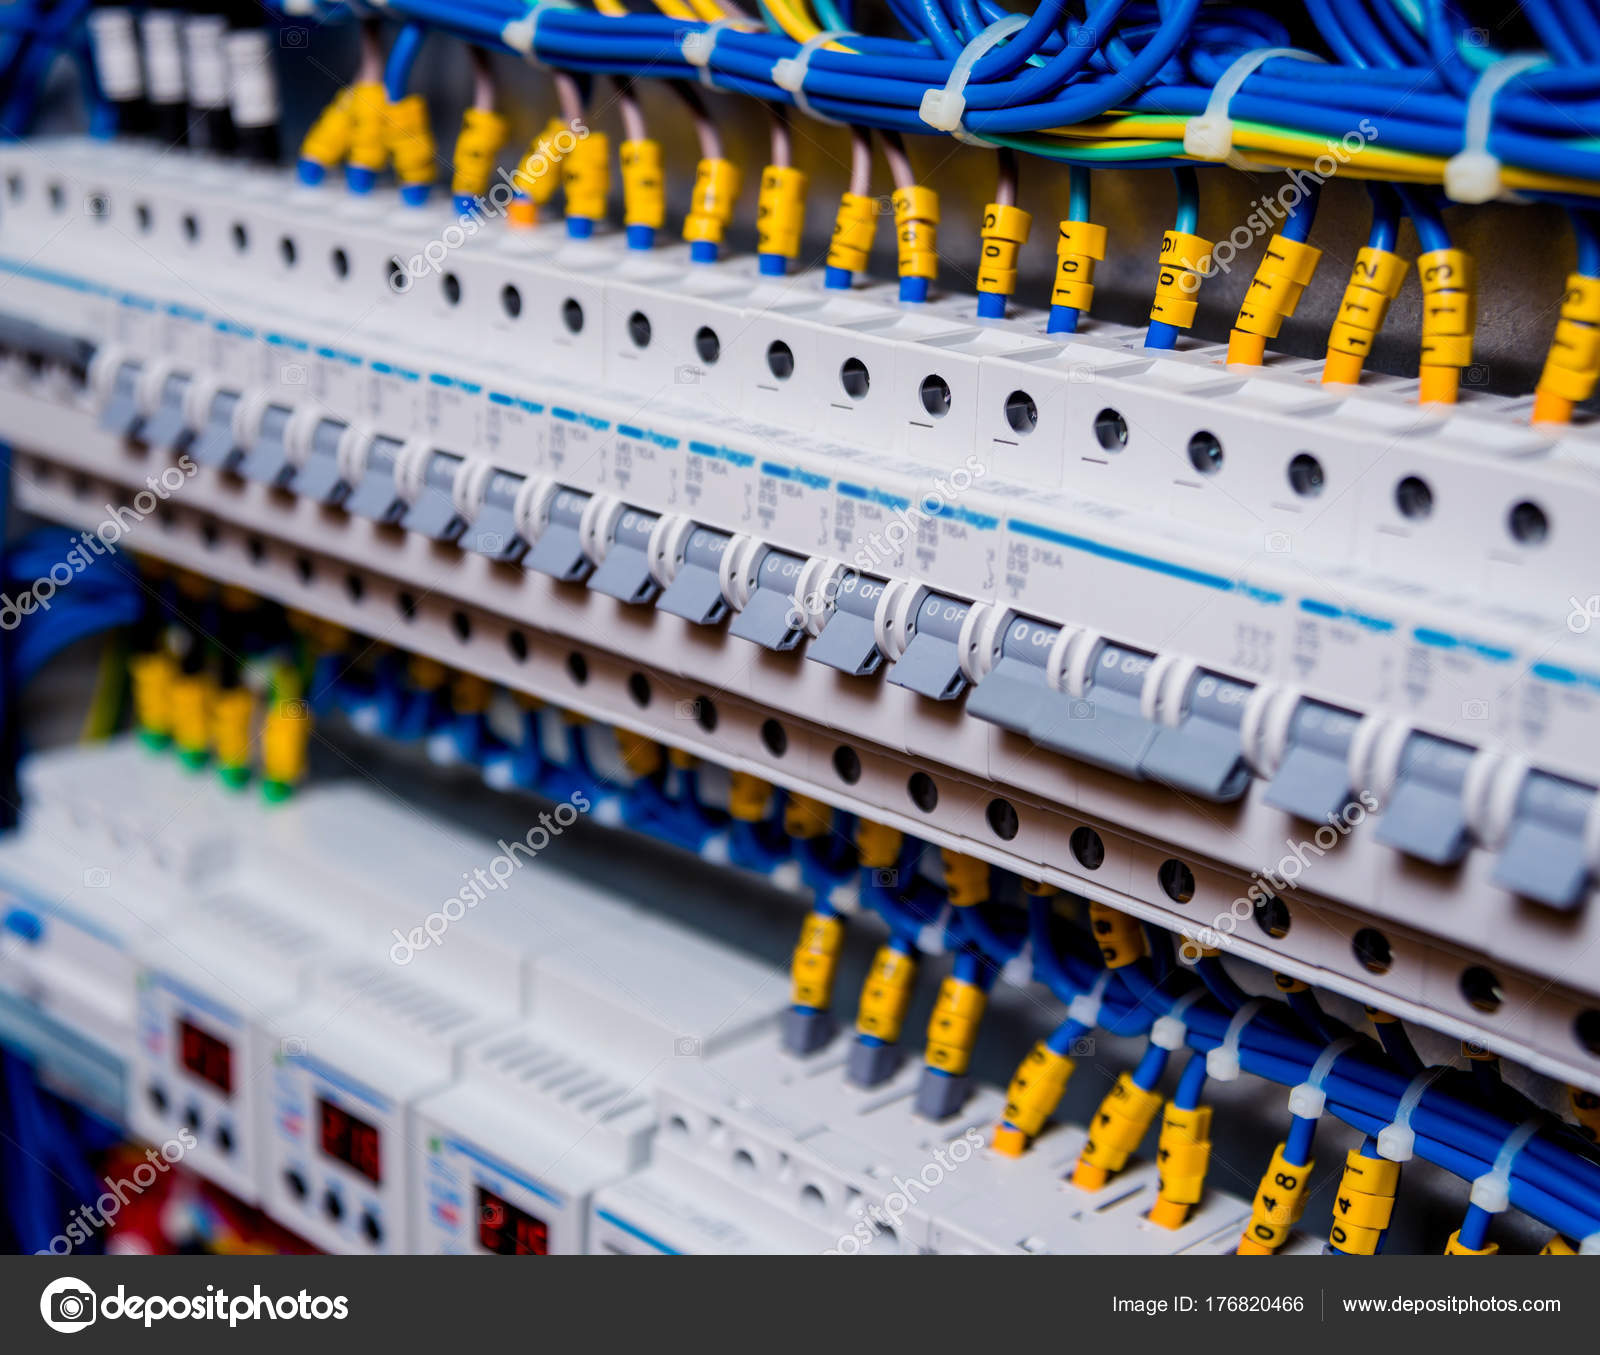 Voltage Switchboard Circuit Breakers Stock Photo Romaset 176820466 Circuitry Of An Electronic Calculator Royalty Free Photography